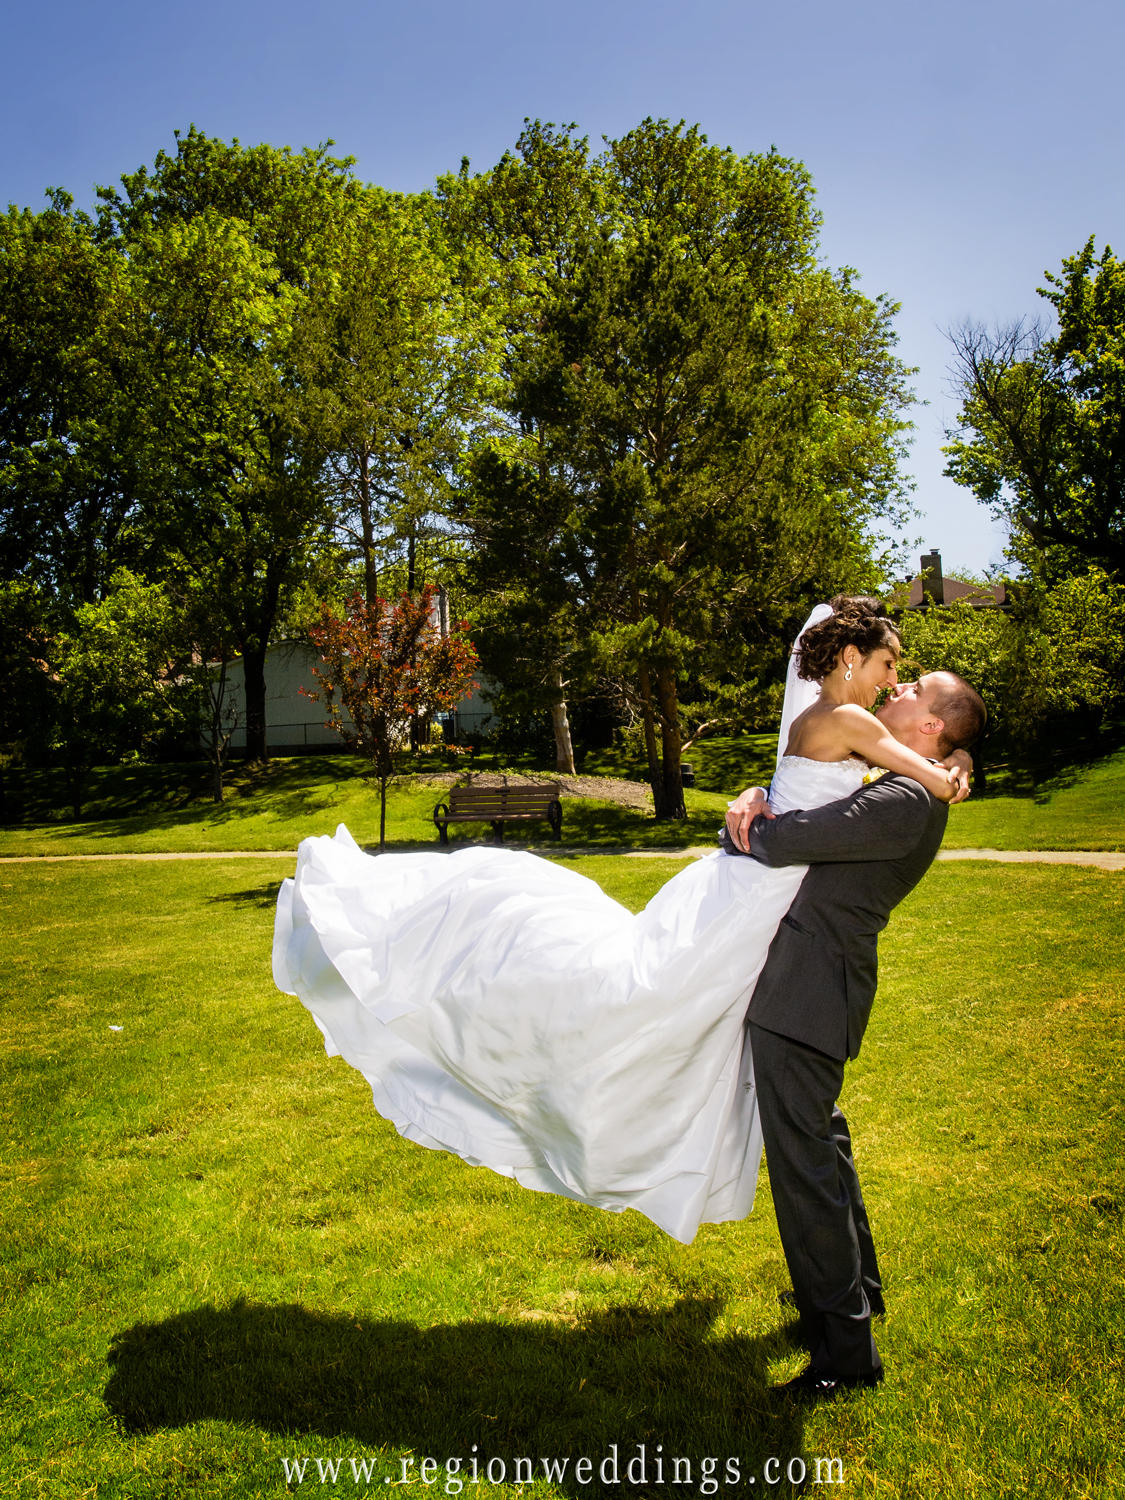 The groom lifts his bride into the air for their summer wedding photos in Homewood, Illinois.